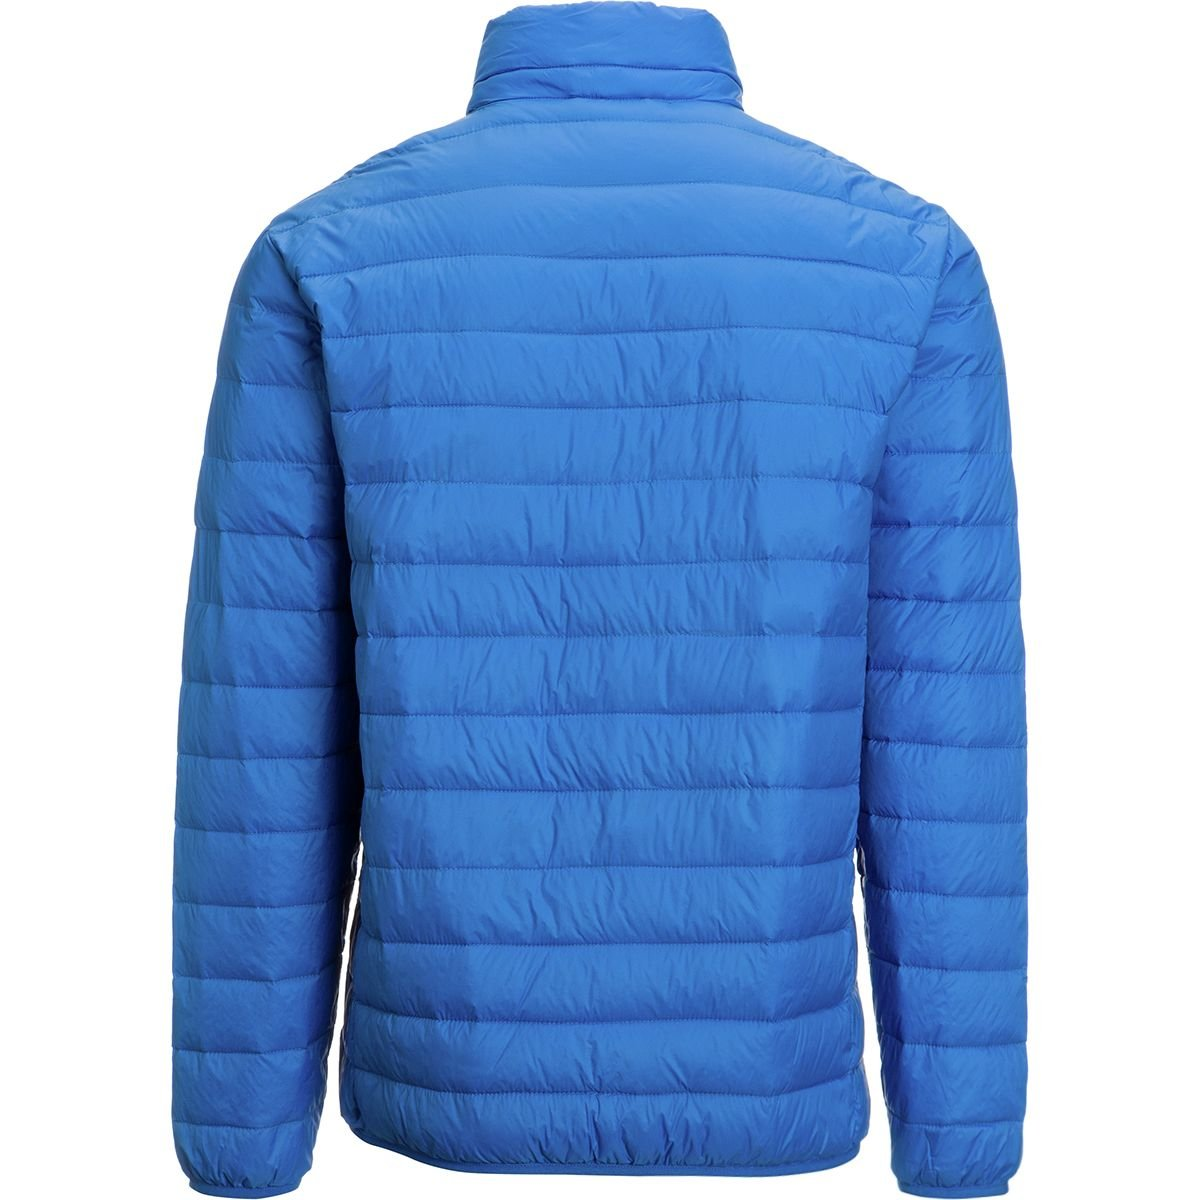 Hawke and Co Packable Down Jacket Mens Palace Blue XXL